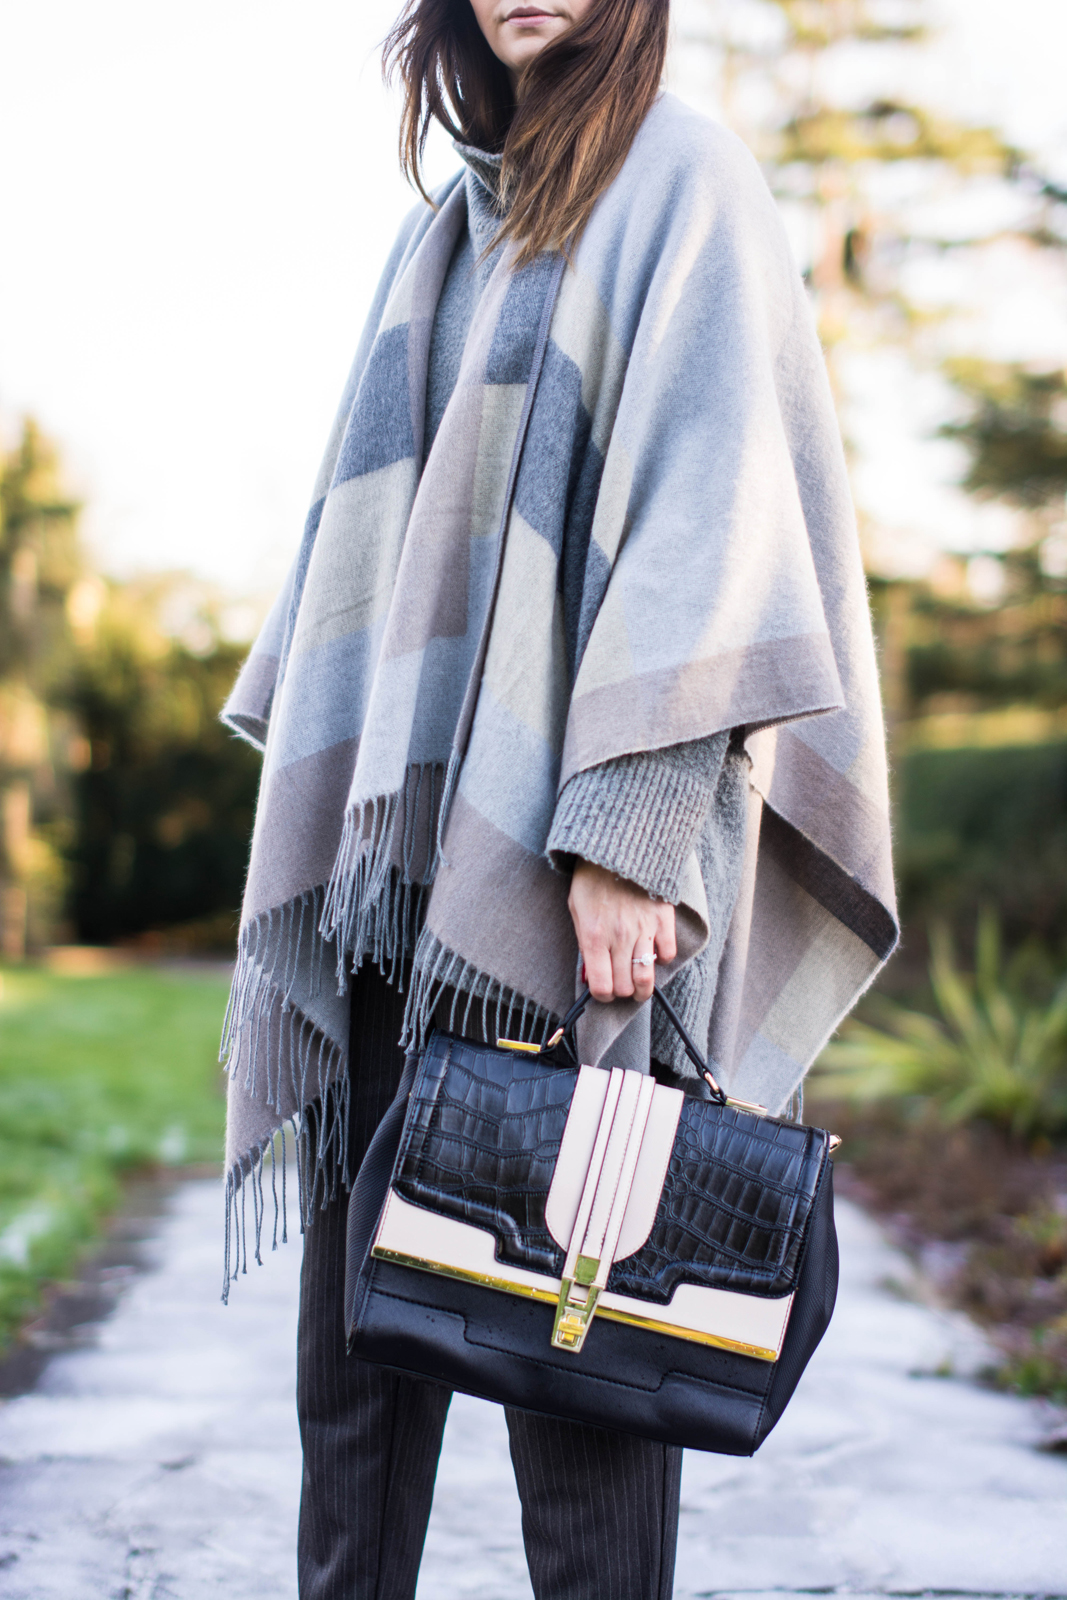 EJSTYLE - River Island Grey Blanket Cape, Fashion Blogger, River Island mock croc bag, OOTD, Winter outfit